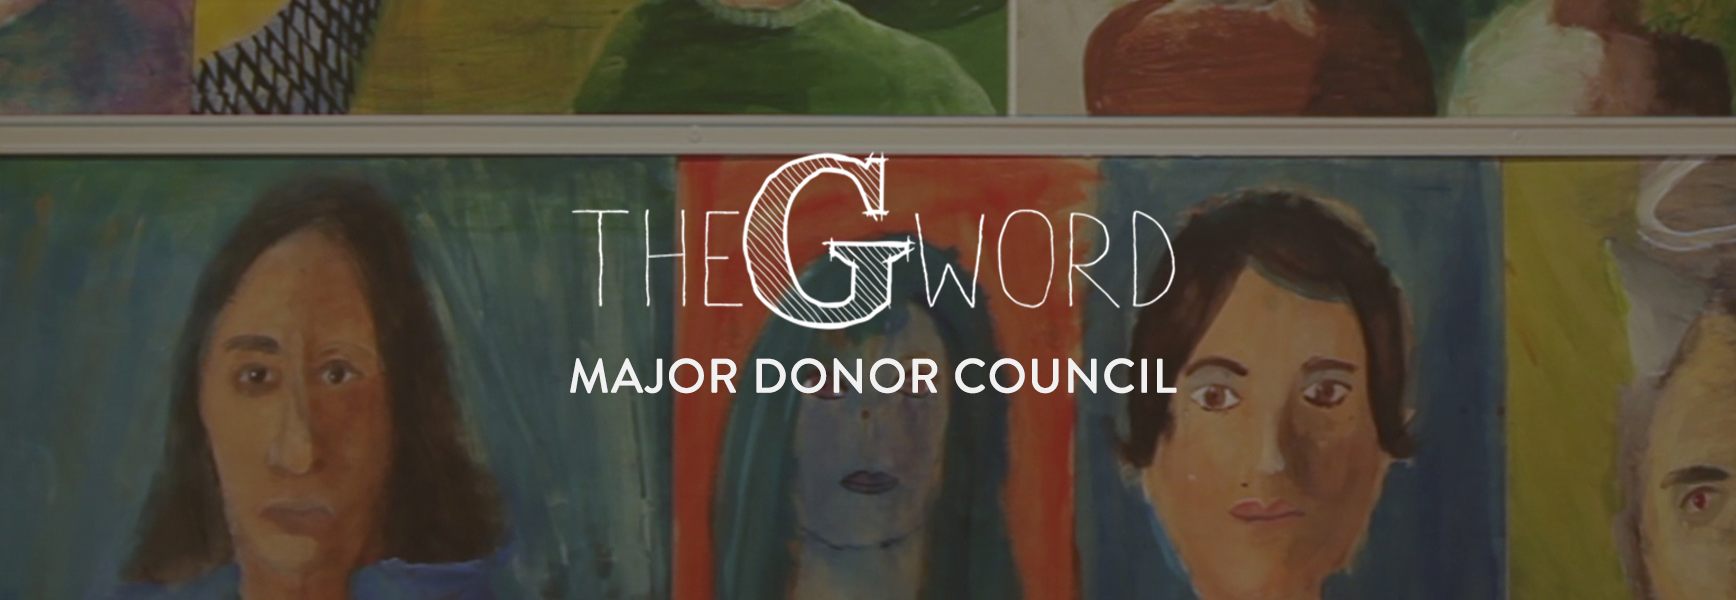 donorcouncil.png